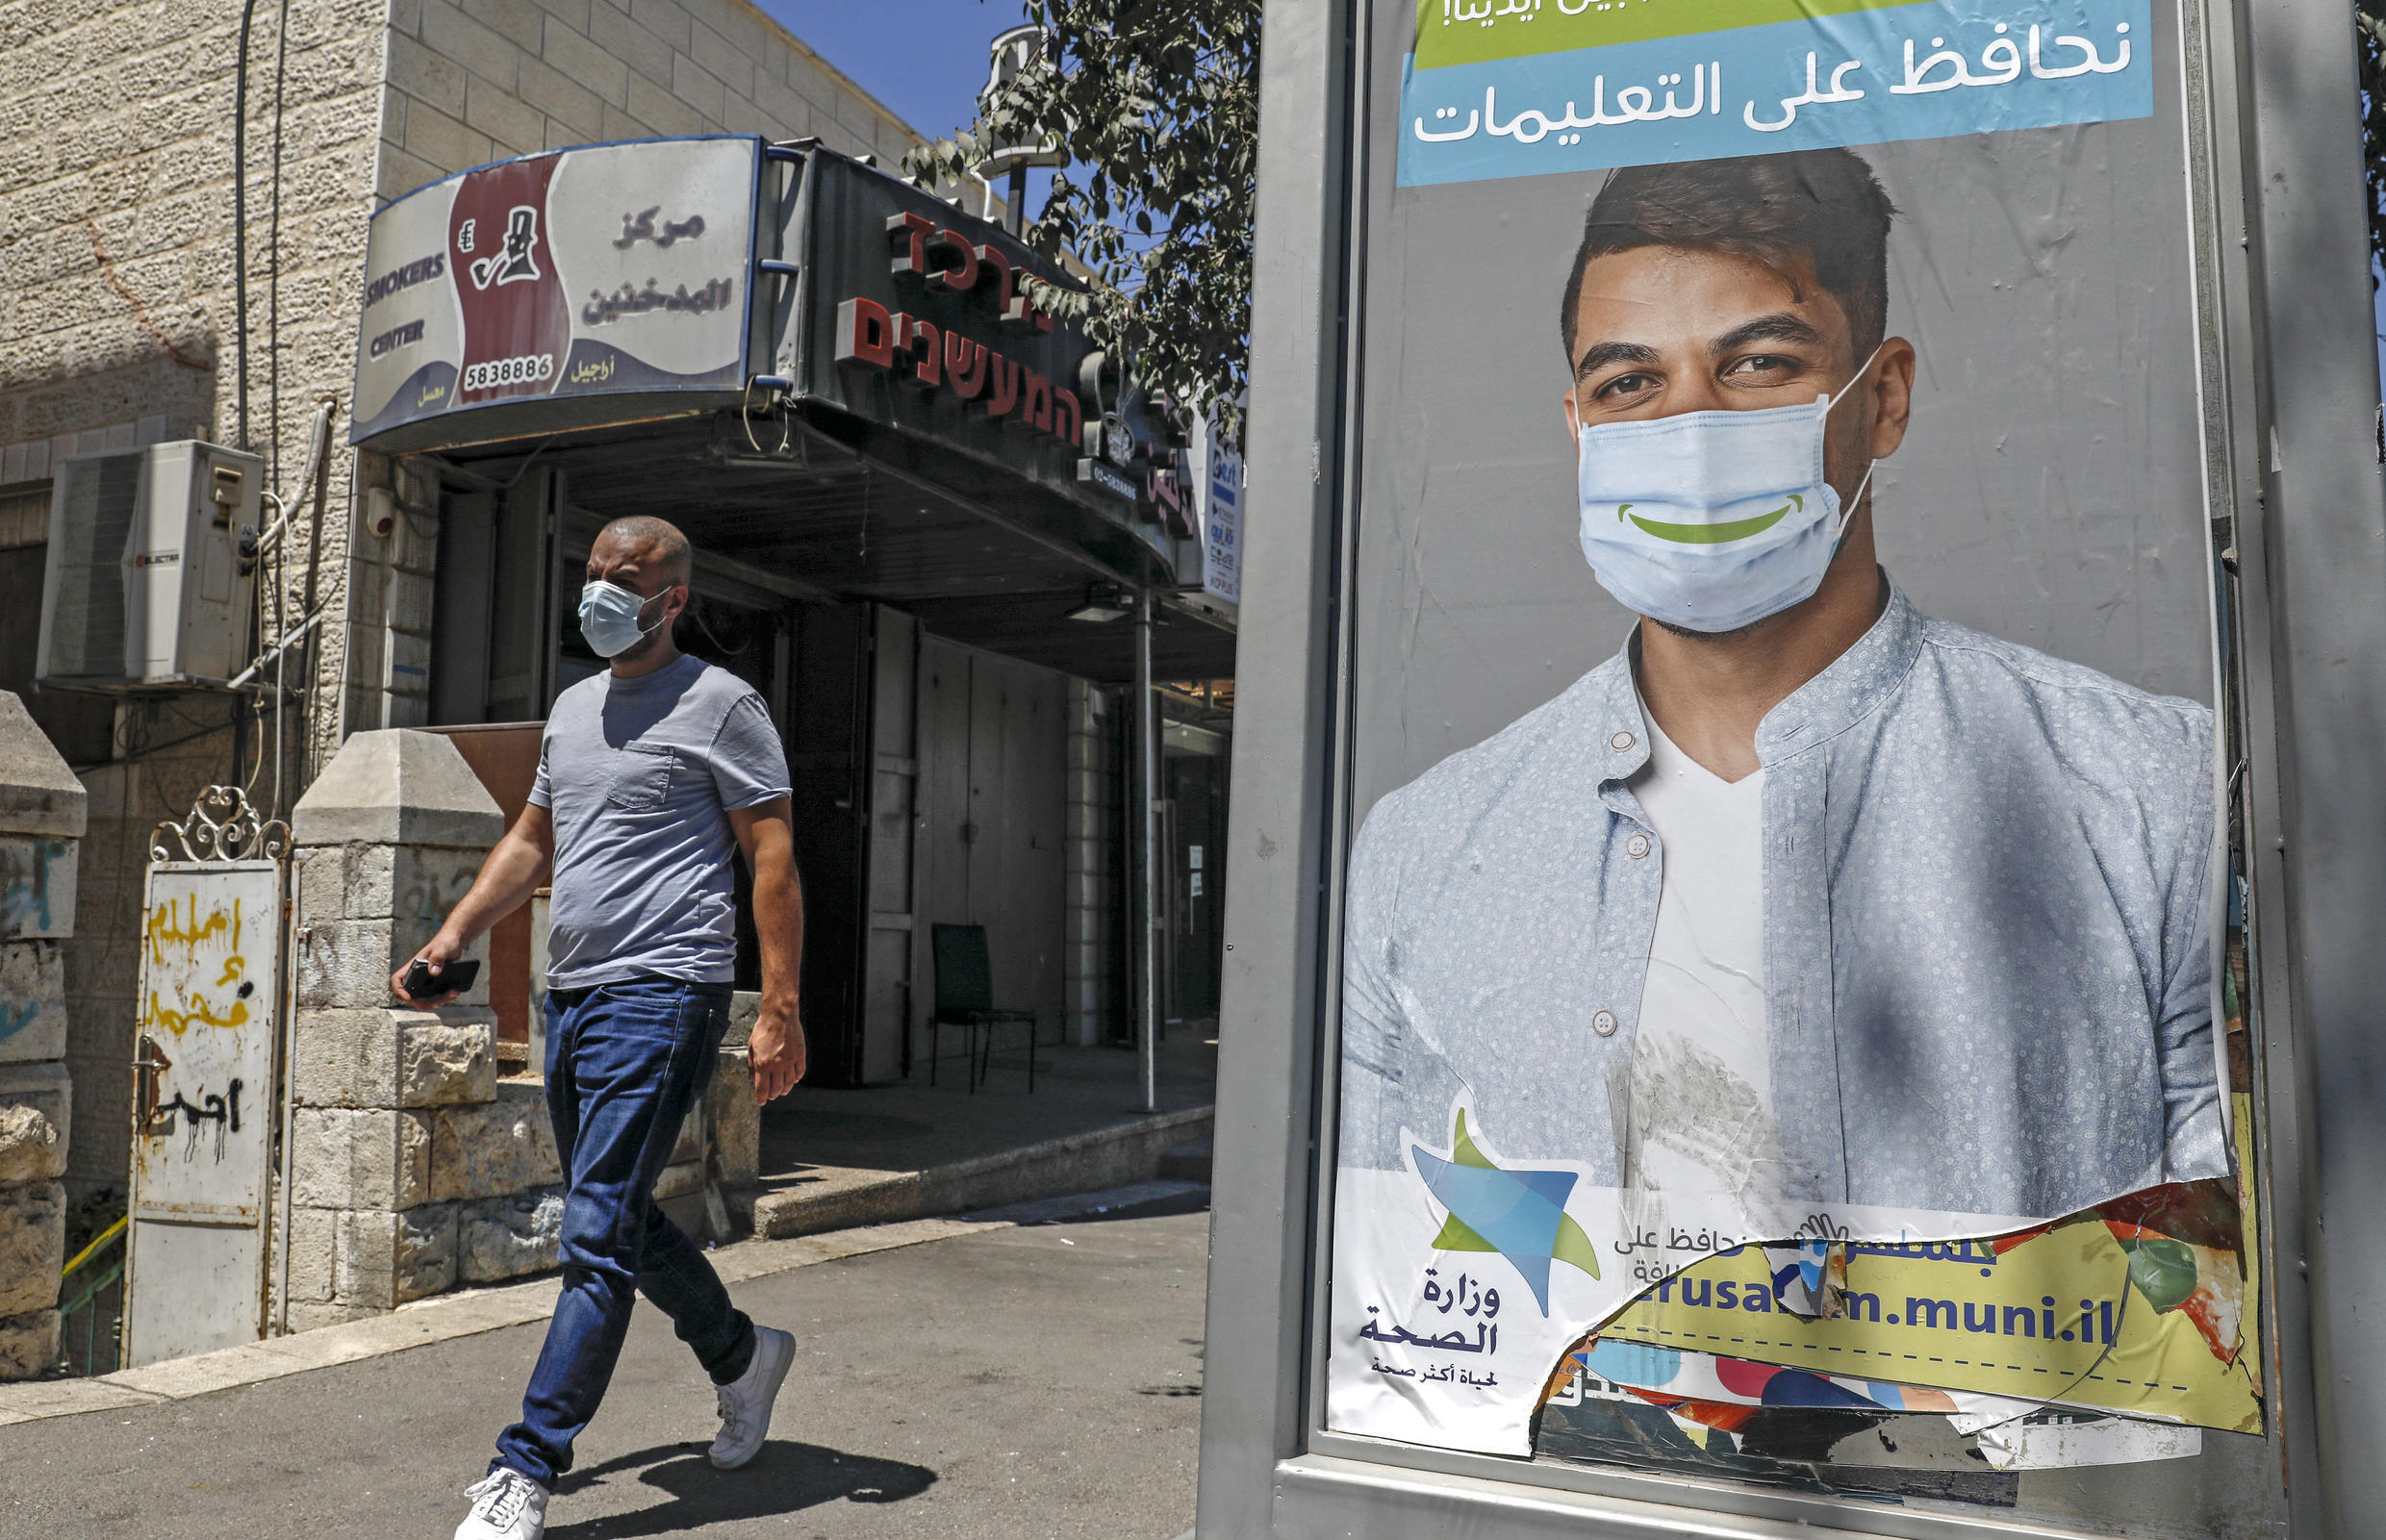 A mask-clad man walks past a billboard showing other mask-clad faces and adequate social distance measures, raising awareness about Covid-19 coronavirus pandemic precautions, in the Beit Hanina neighbourhood in Israeli-annexed East Jerusalem, on August 17, 2020.